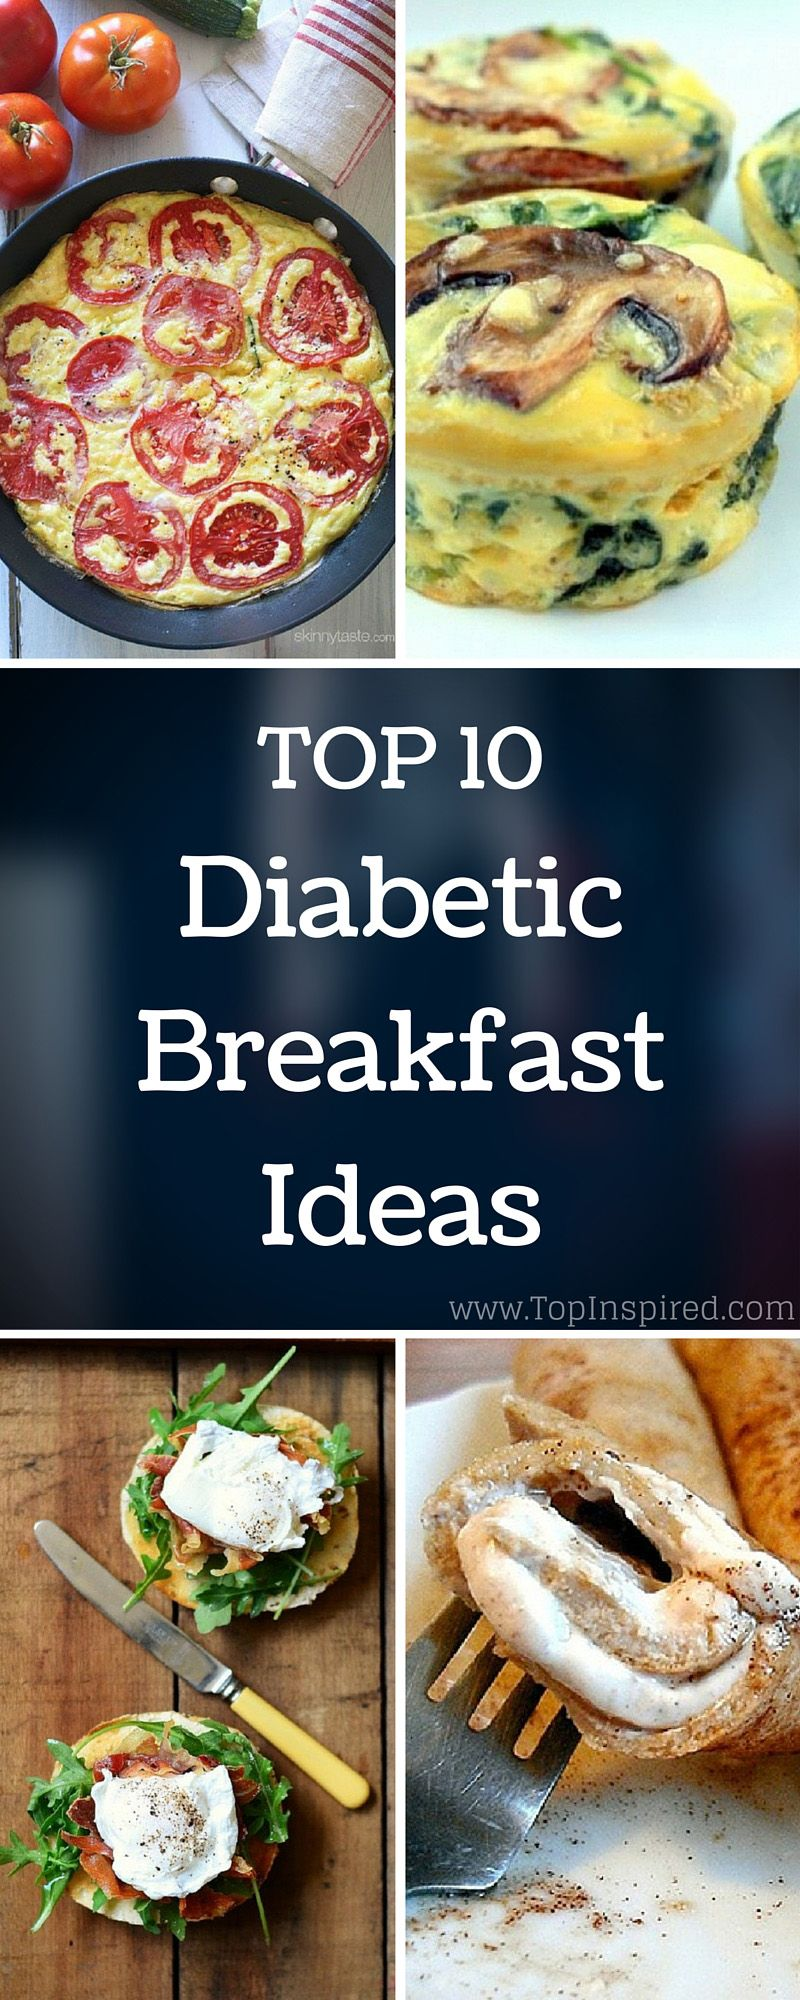 top 10 diabetic breakfast ideas | food & drink | diabetic breakfast